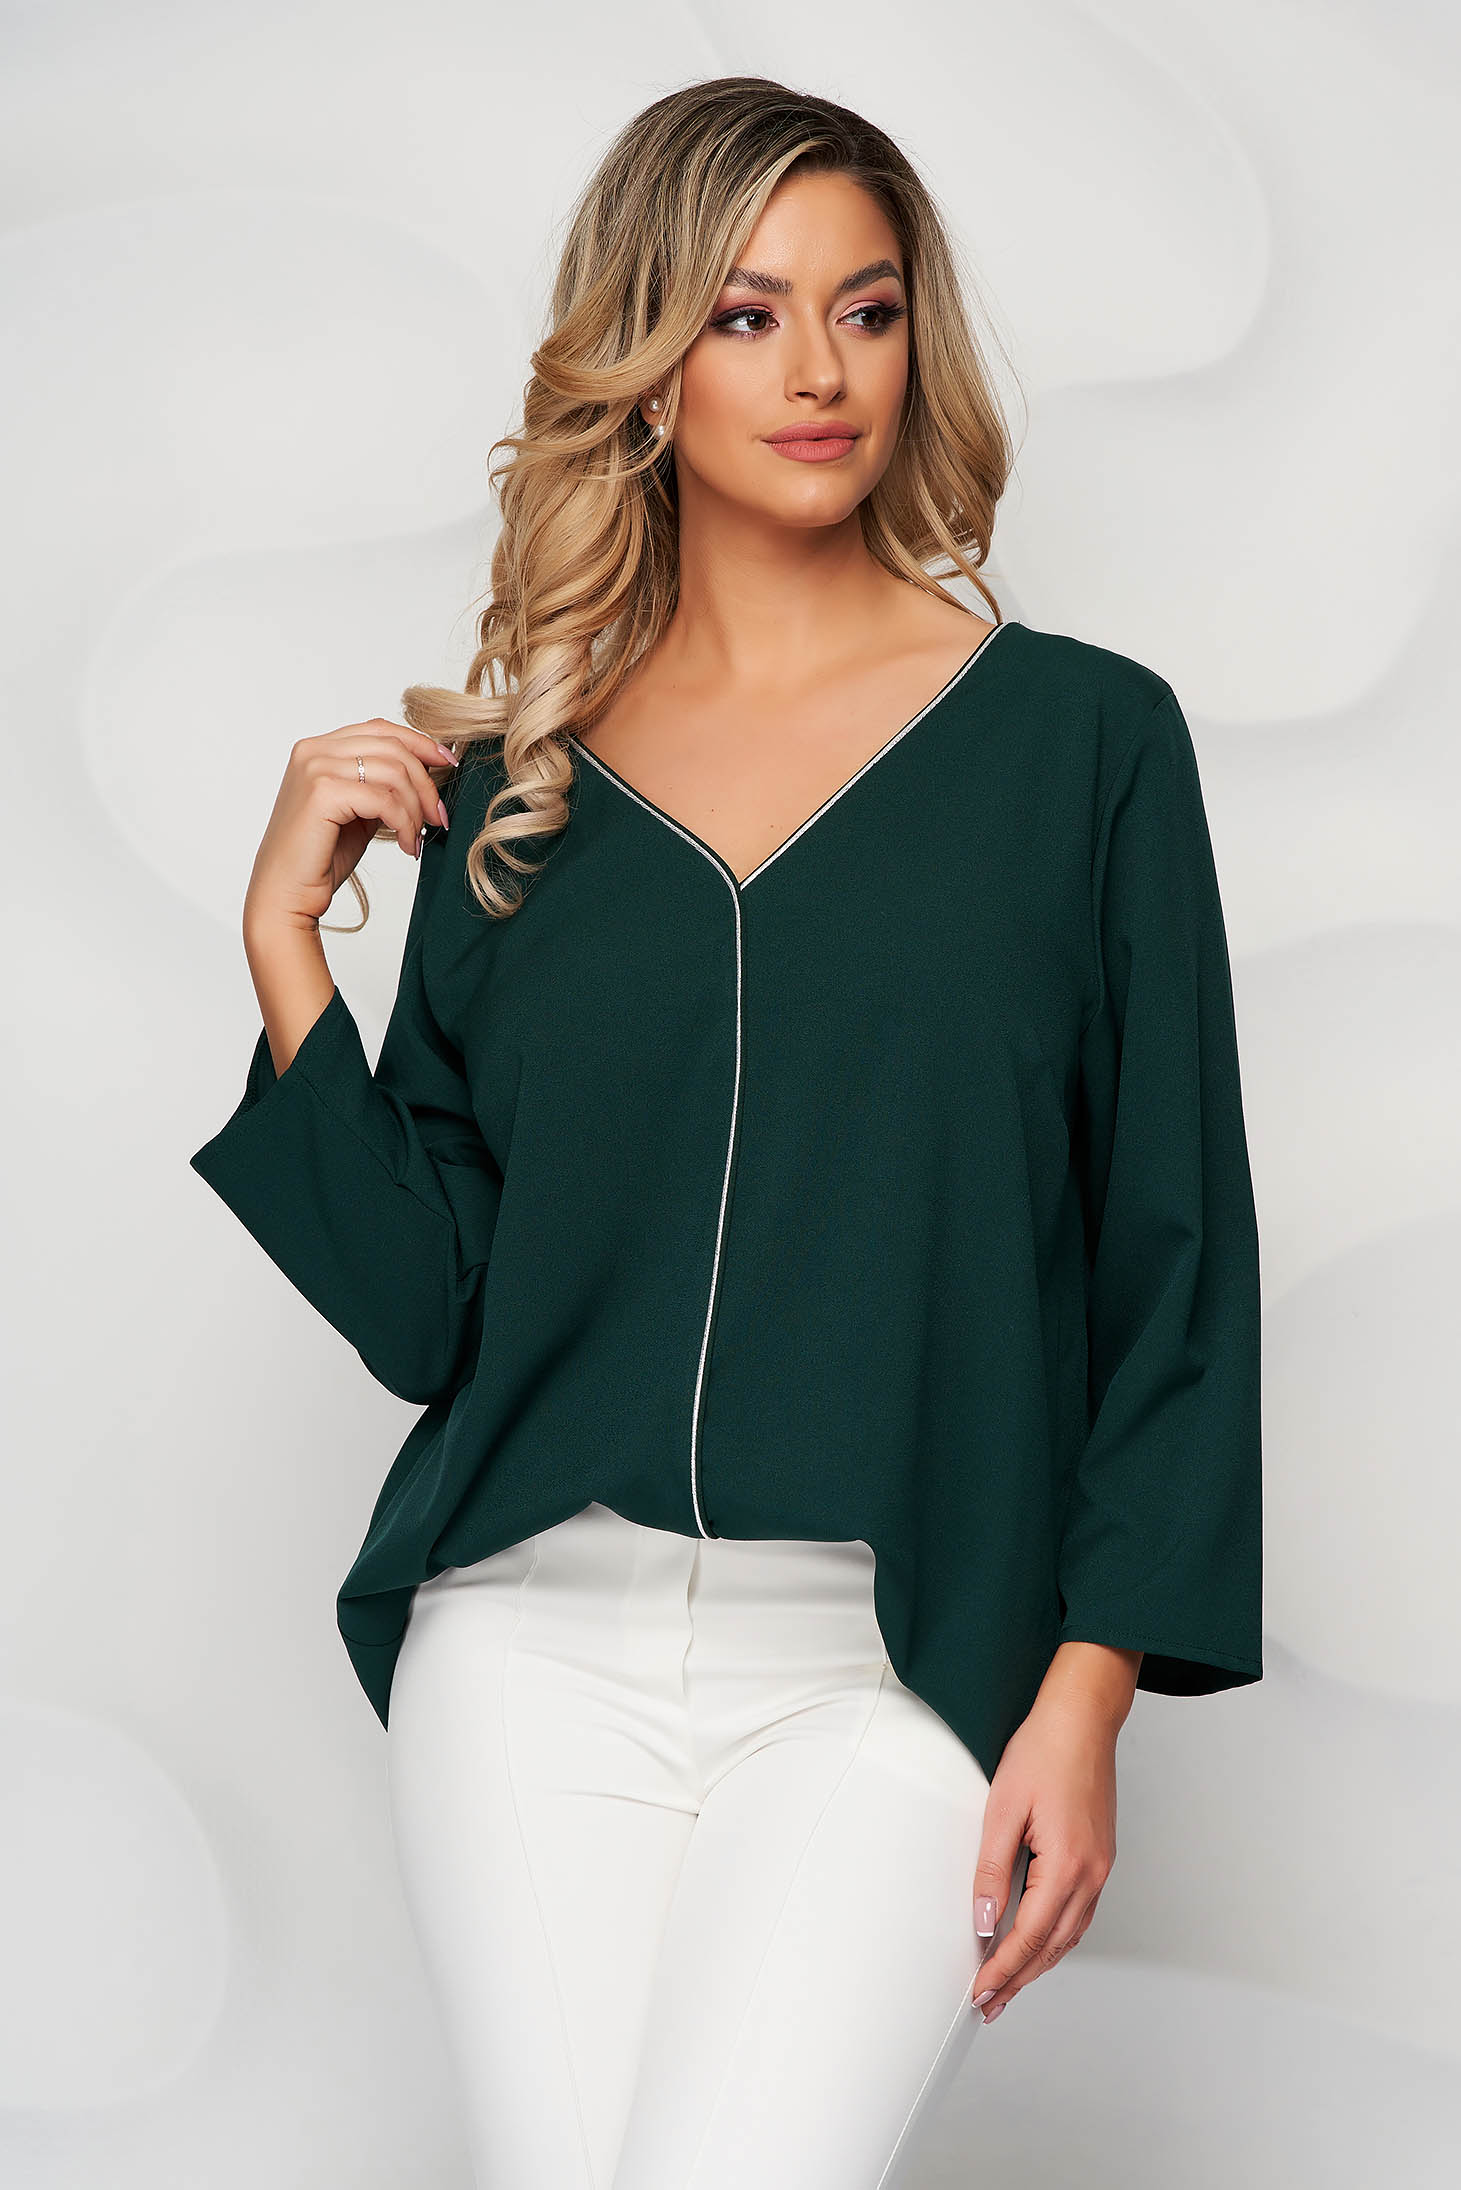 Dirty green women`s blouse v back neckline with glitter details loose fit